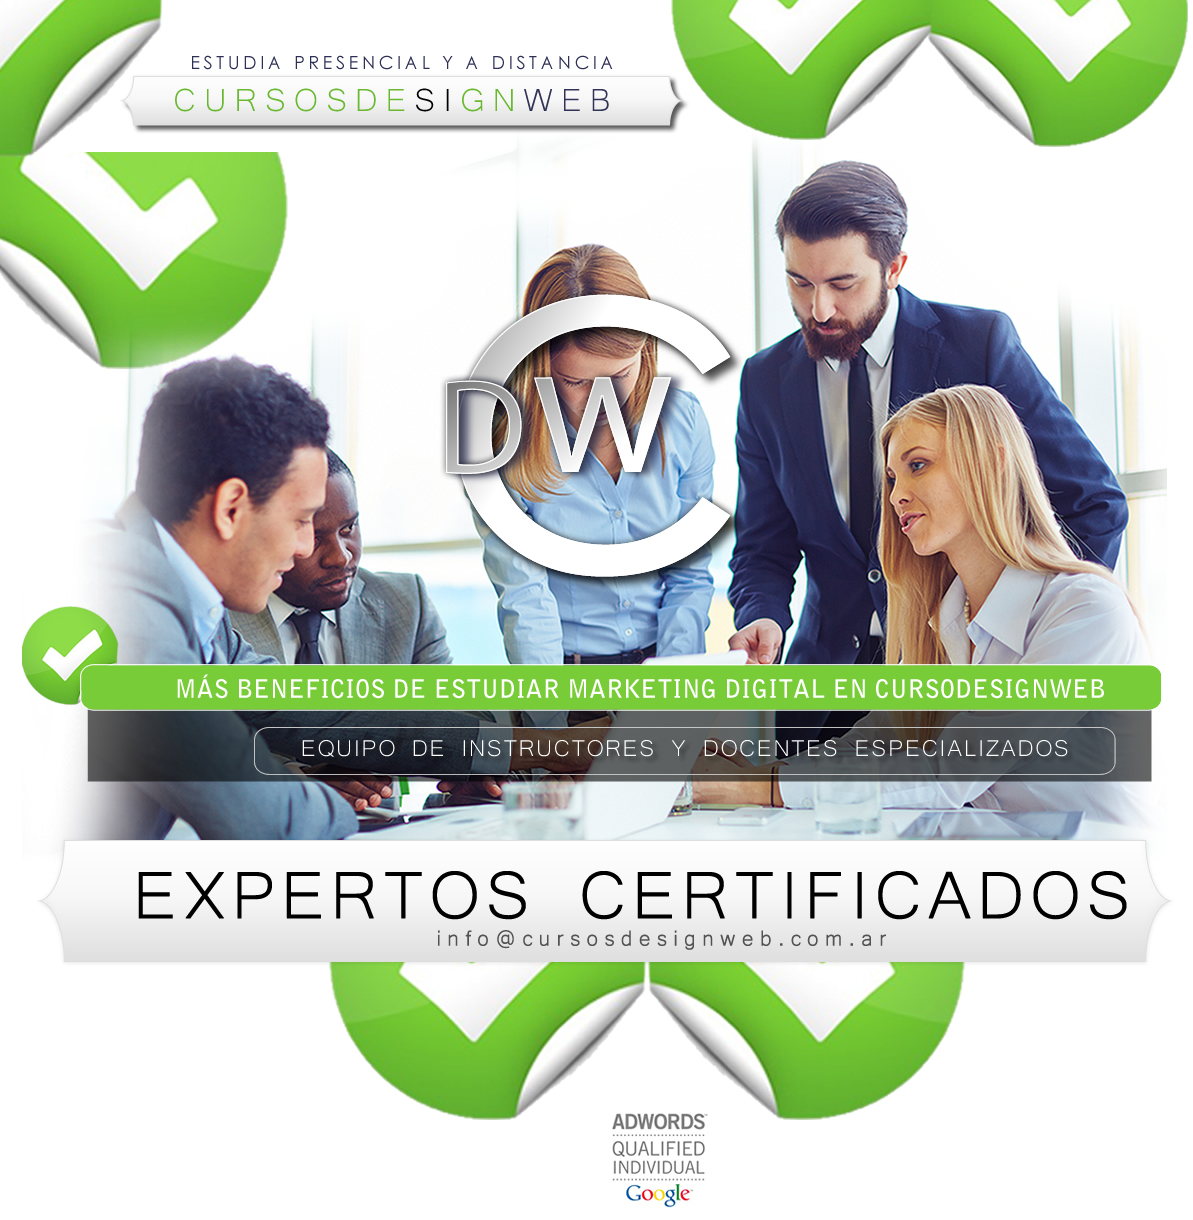 cursos design web, escuela de diseño web y marketing en buenos aires